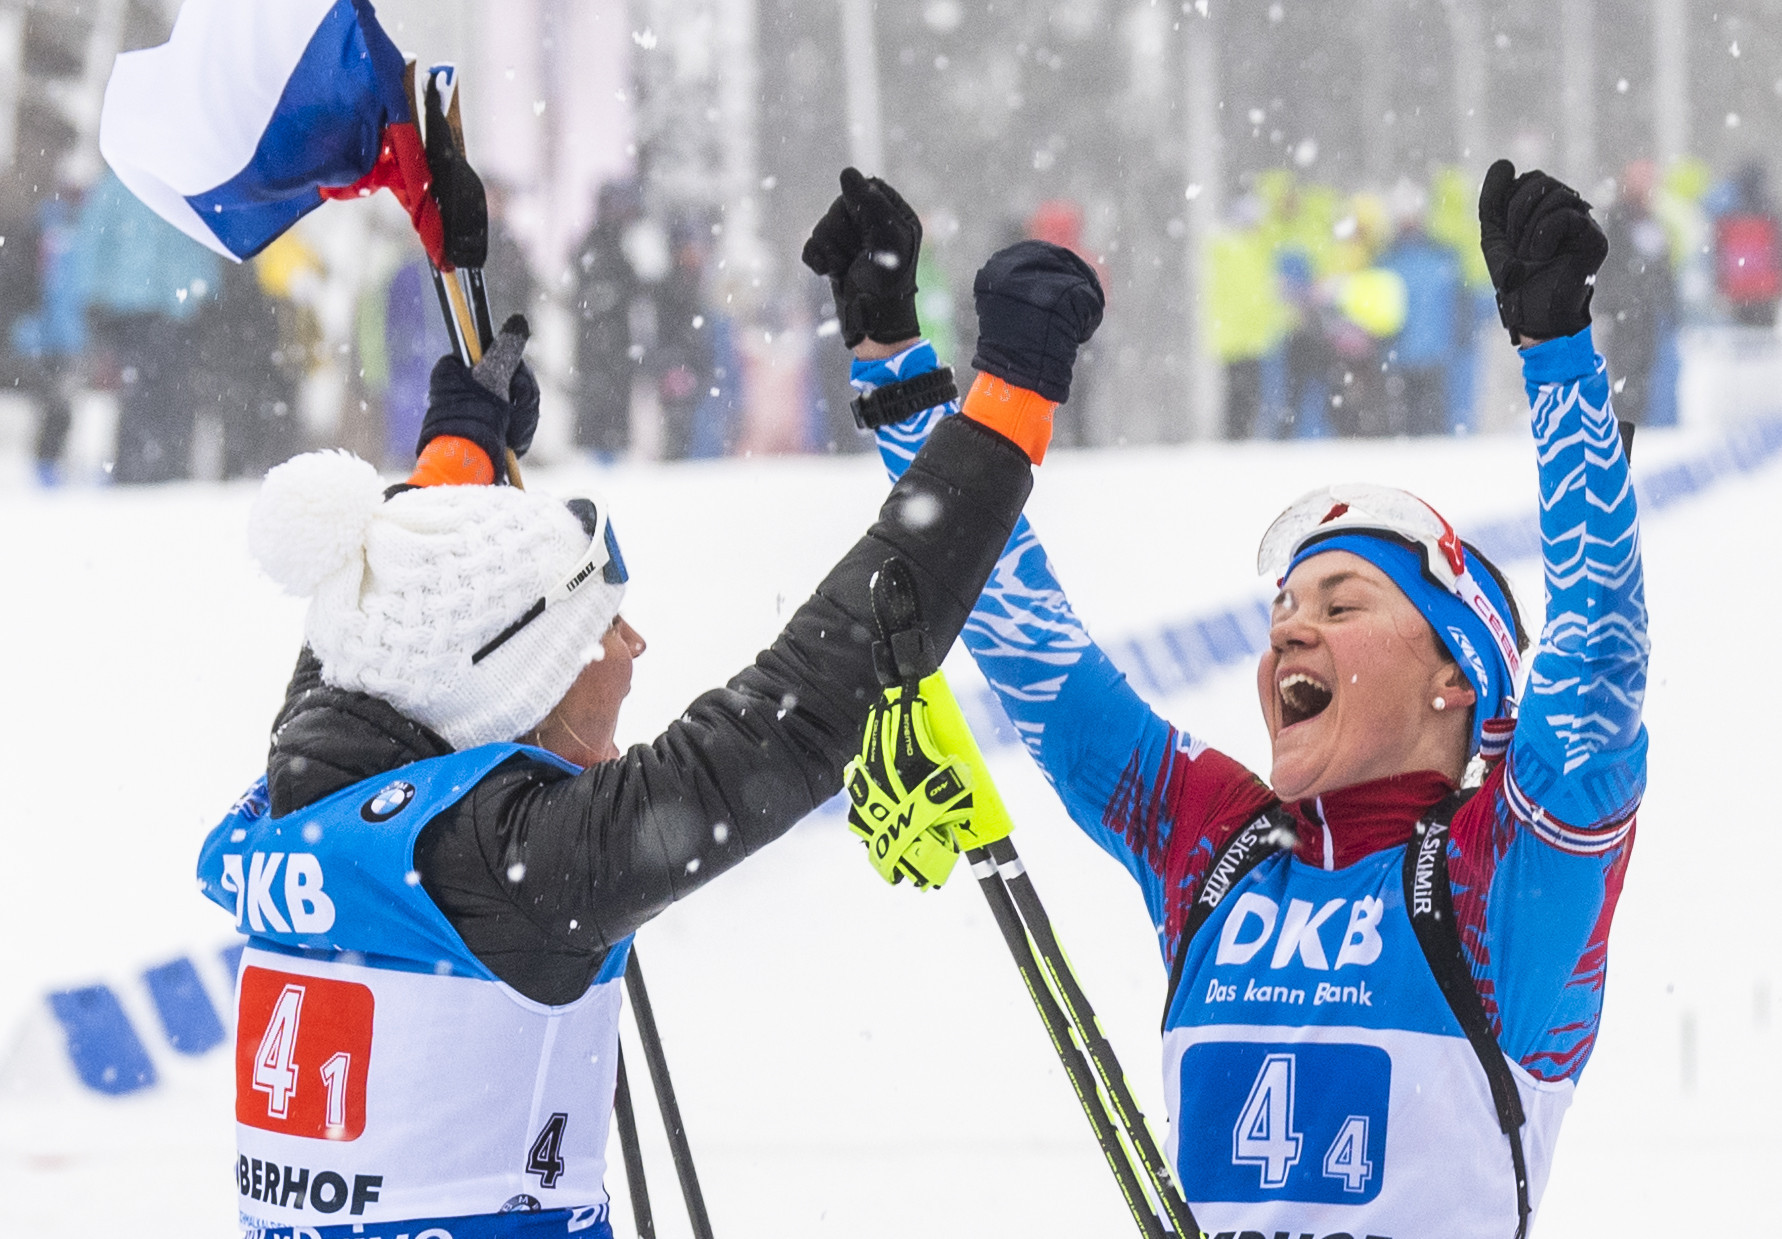 Russia won both the men's and women's relays at the IBU World Cup in Oberhof today ©Getty Images